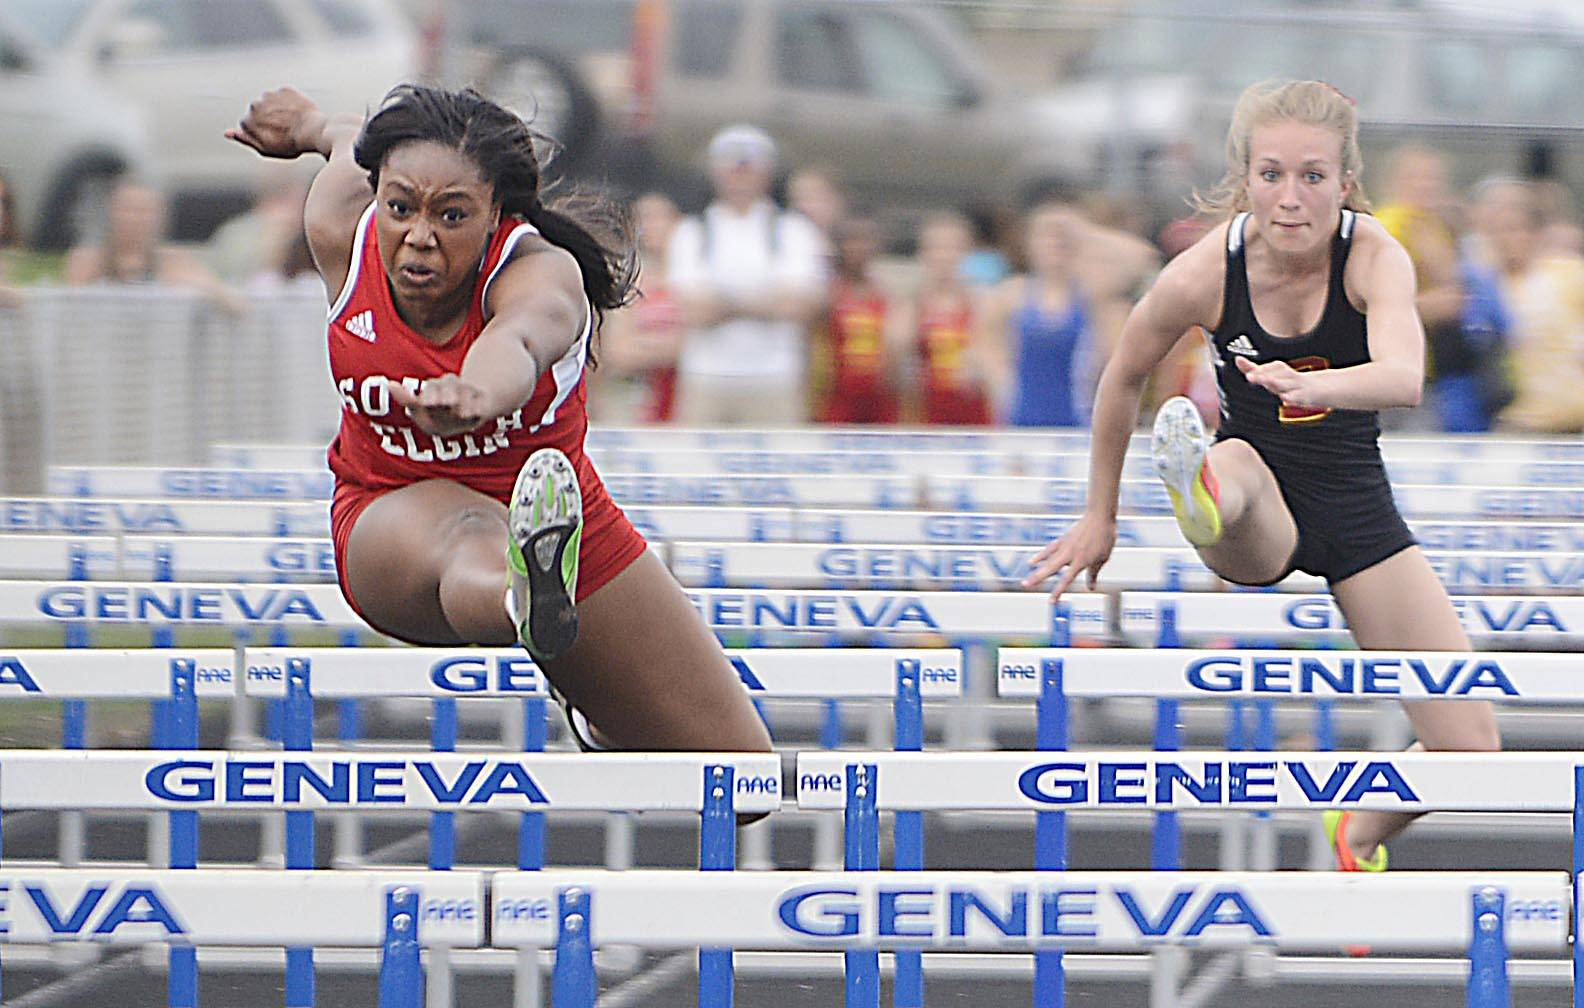 South Elgin's Taylor Withers leads Batavia's Taylor Stieve in the 100 meter hurdles Thursday at the Upstate Eight Conference girls track meet at Geneva High School.